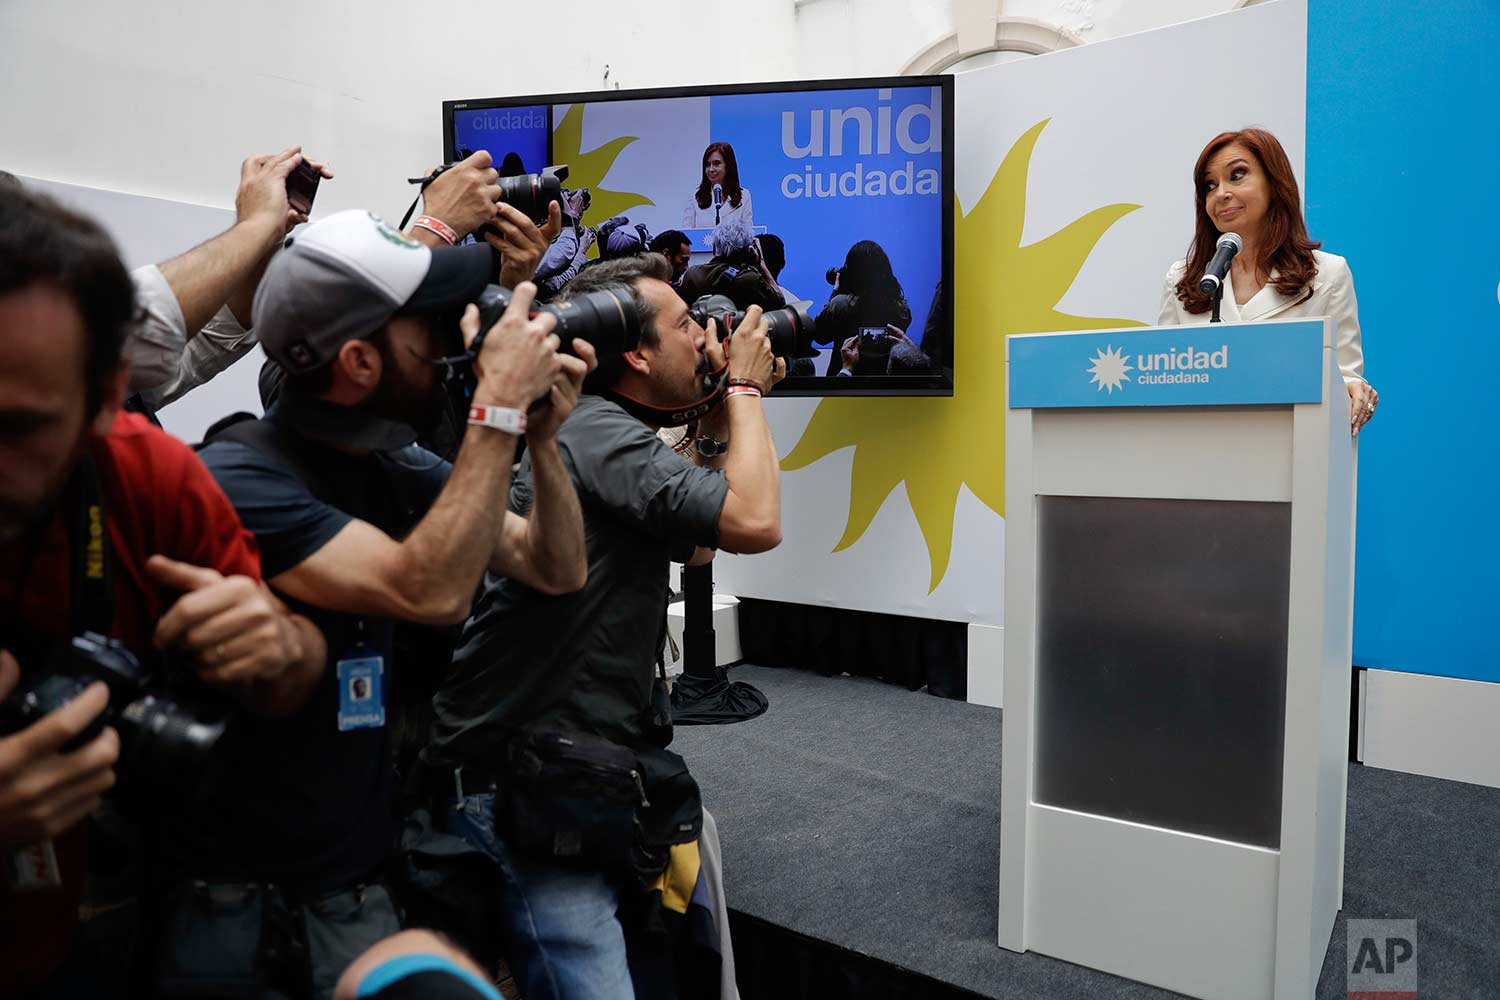 Argentina's former President Cristina Fernandez speaks at a press conference in Buenos Aires, Argentina, Tuesday, Oct. 10, 2017. (AP Photo/Natacha Pisarenko)